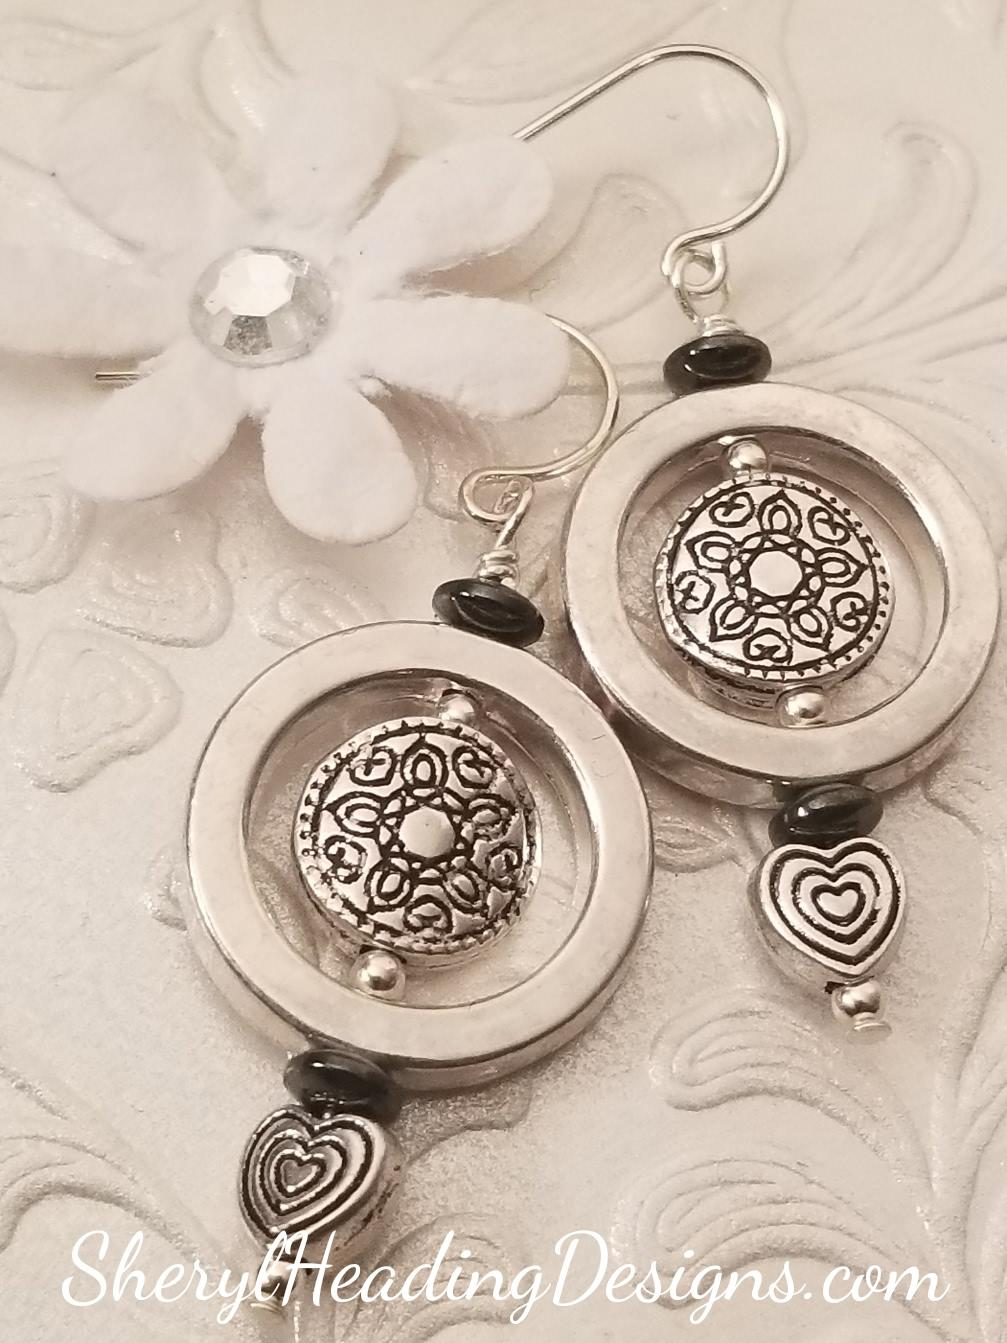 Sweet Silver Dangle Earrings - Sheryl Heading Designs